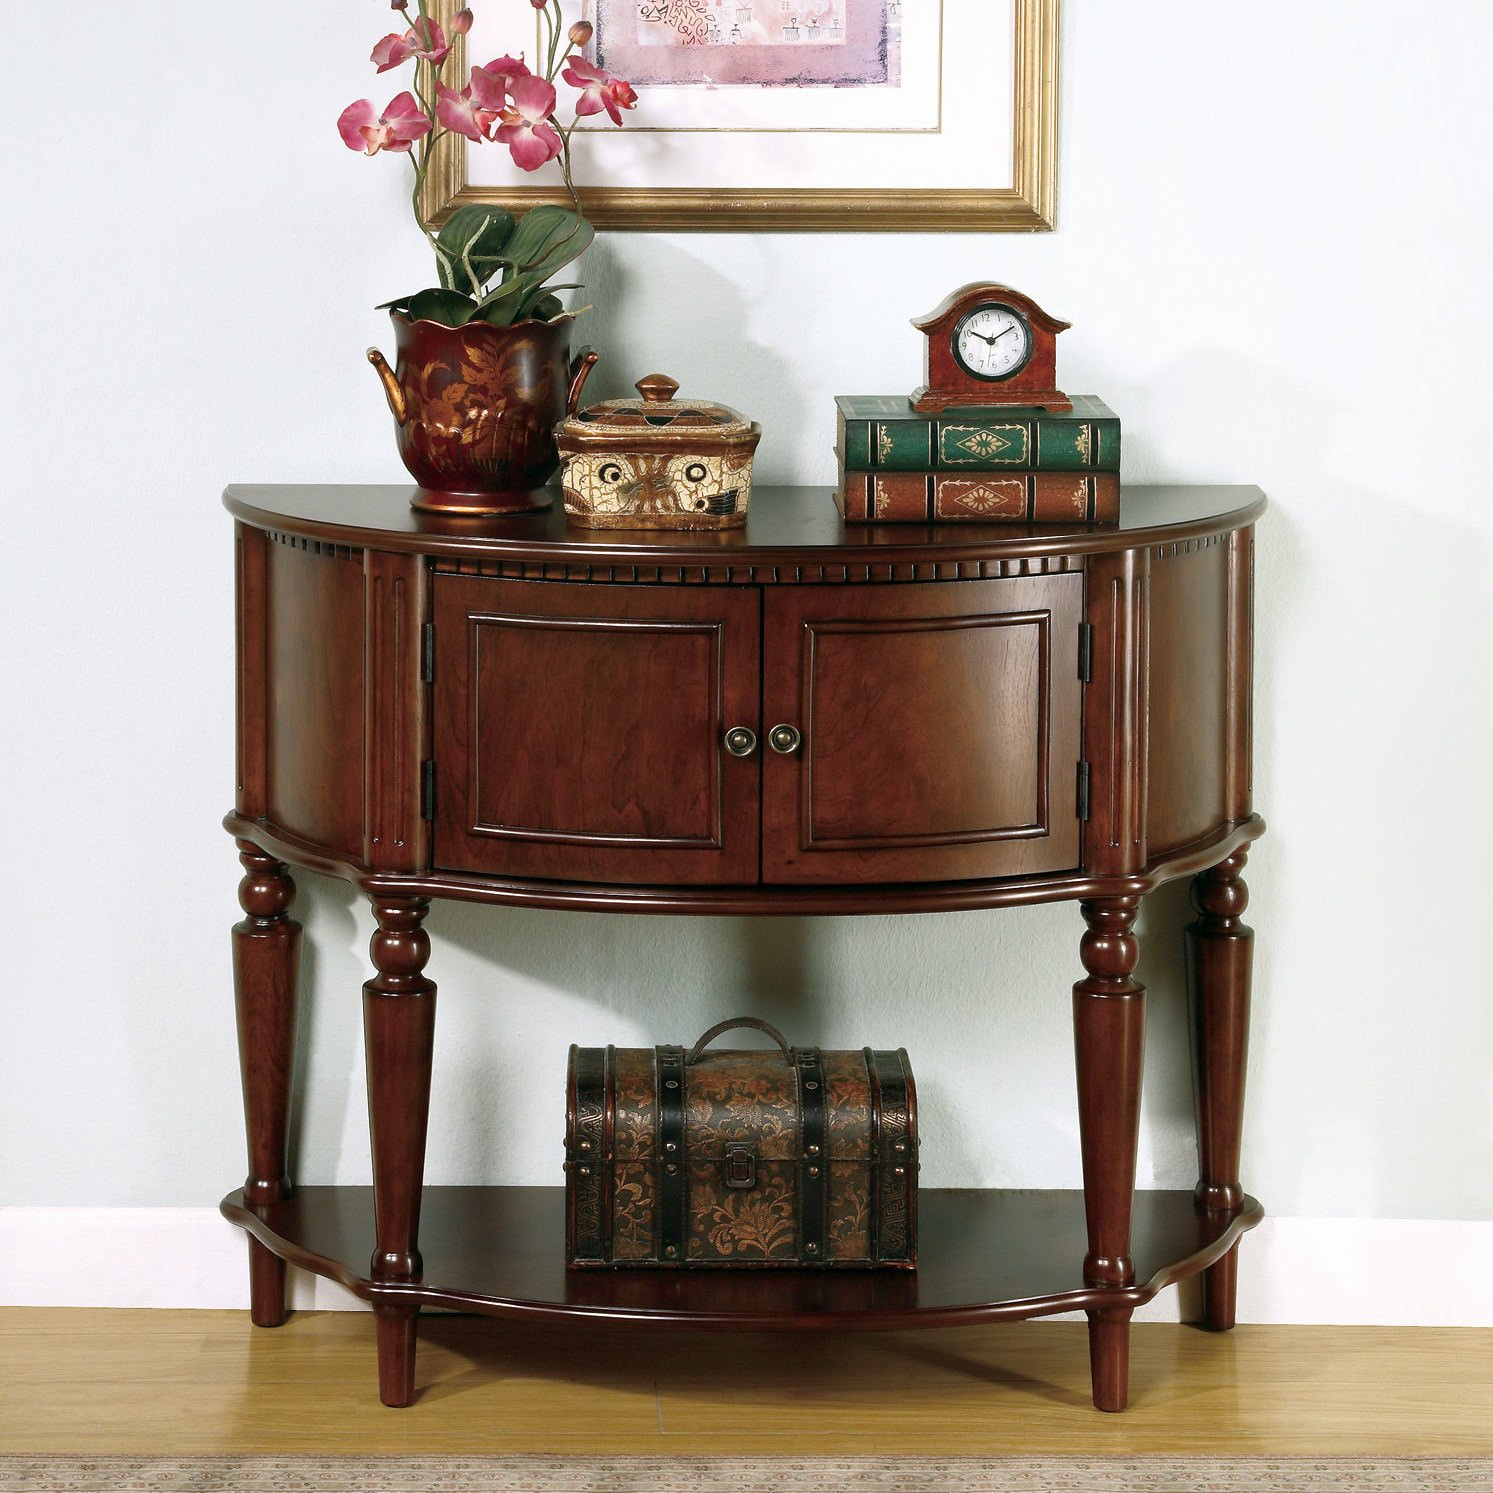 Foyer table with cabinet compartment